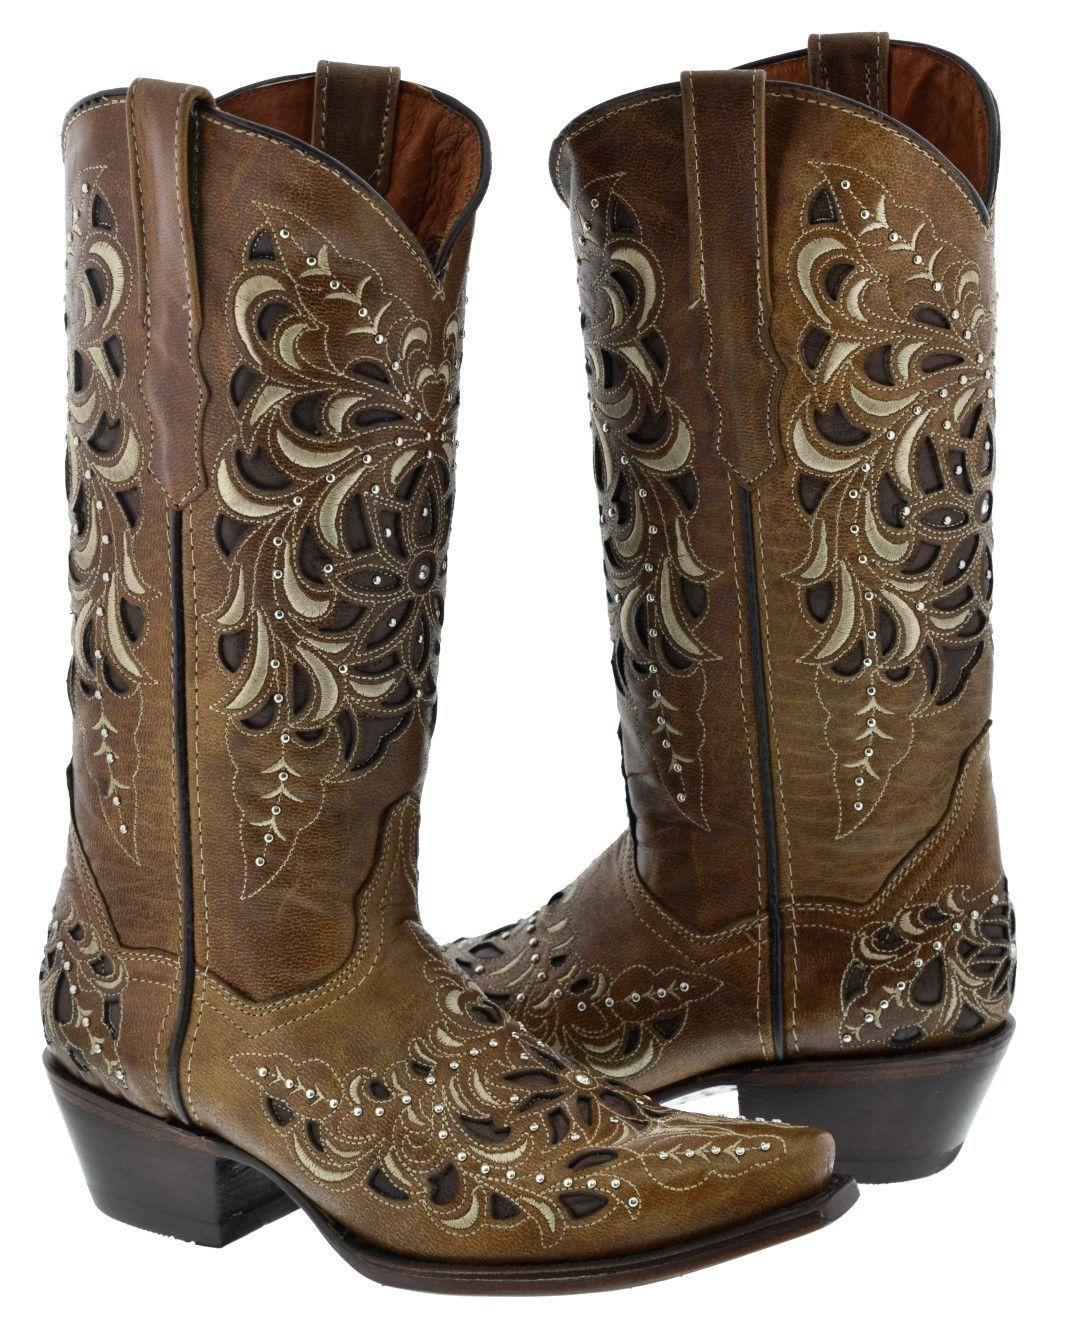 Women's Light Brown Inlay Rose Design Embroidered Cowgirl Western Boots Snip Toe